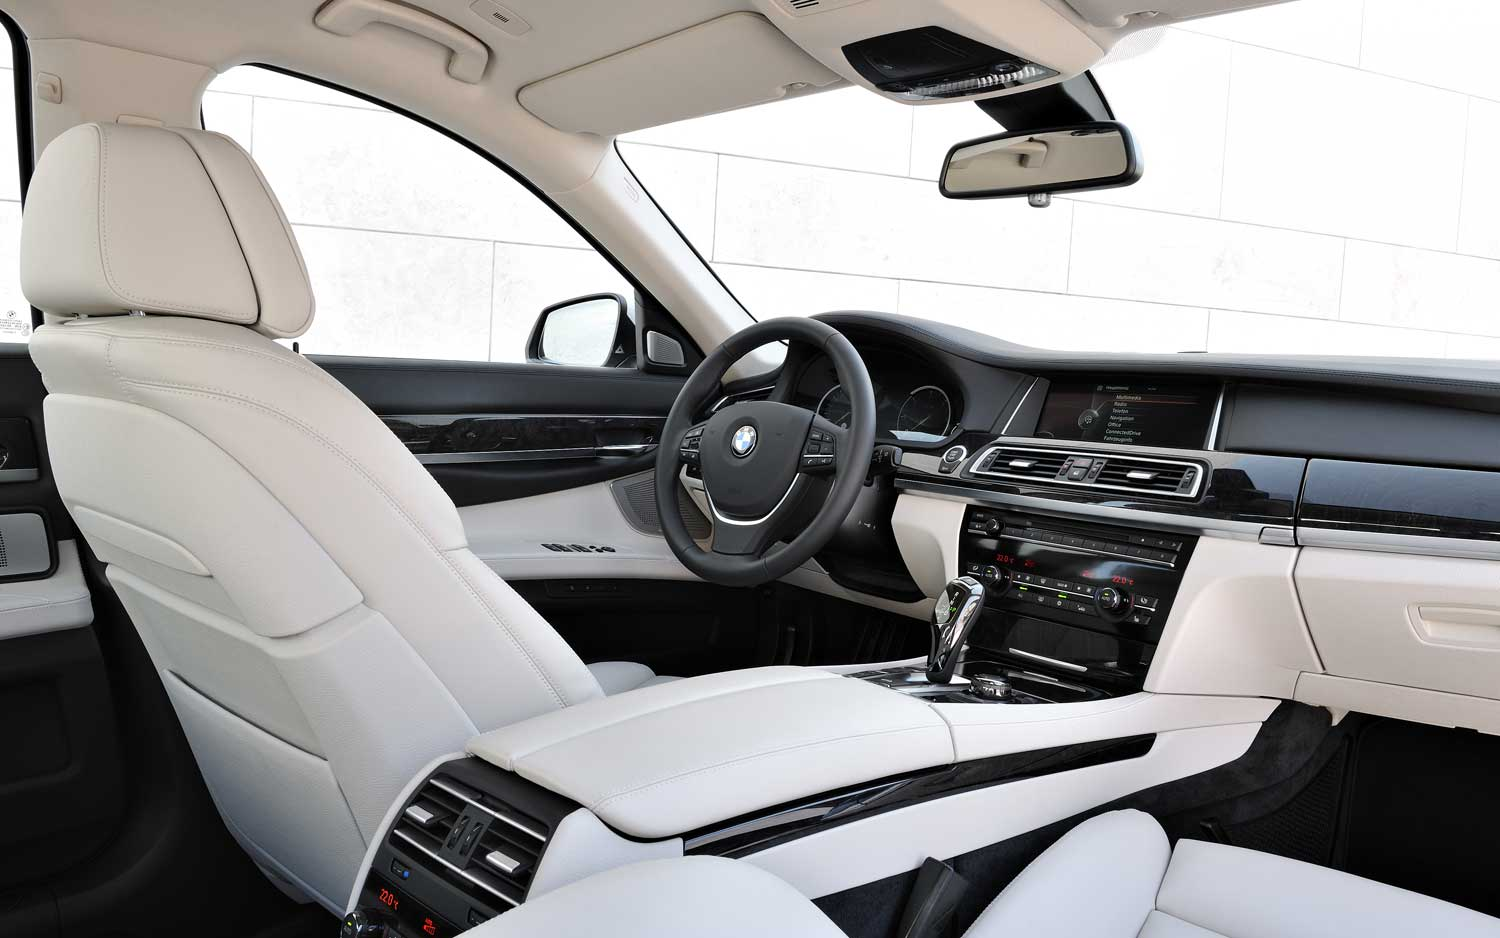 bmw b automobiles another executive oil owner second pampered warranty cpo which rare sale for first being mint exec my local options full o msport gas the is i tvs h with a am forums